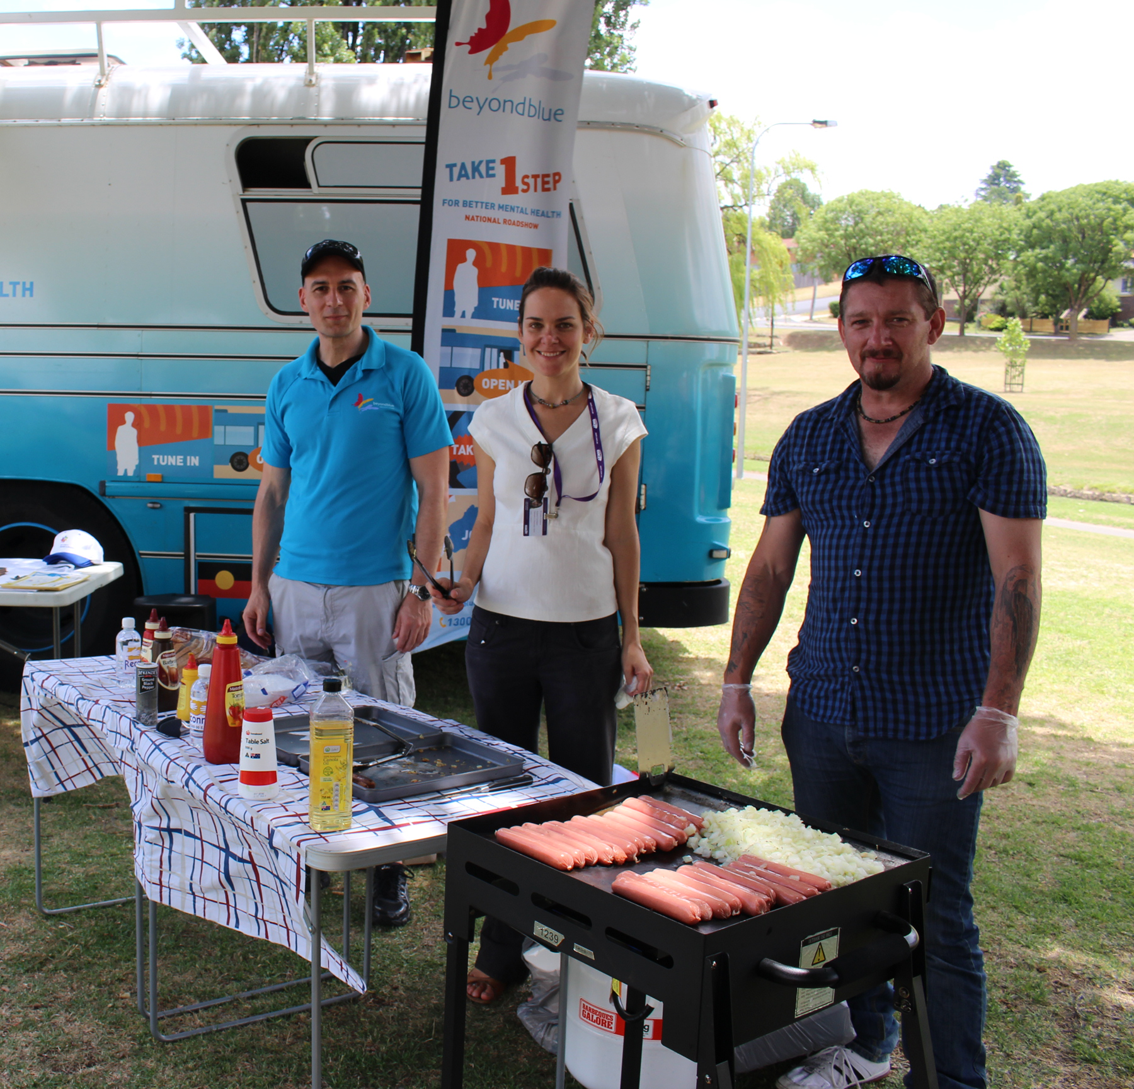 Cooking up the free community barbecue at Curtis Park in Armidale.